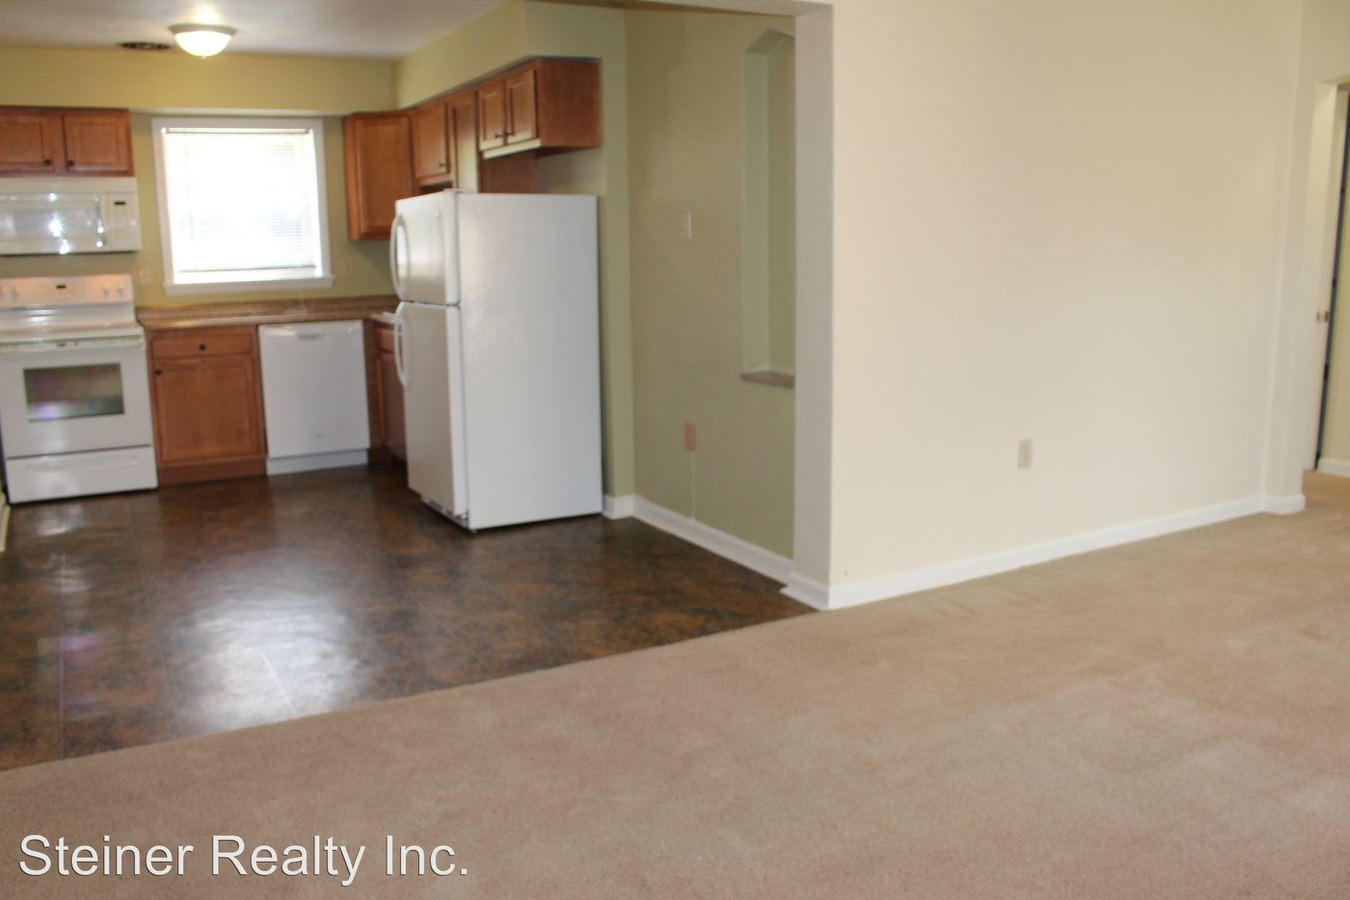 1 Bedroom 1 Bathroom Apartment for rent at Wasson Apartments in Mt Lebanon, PA